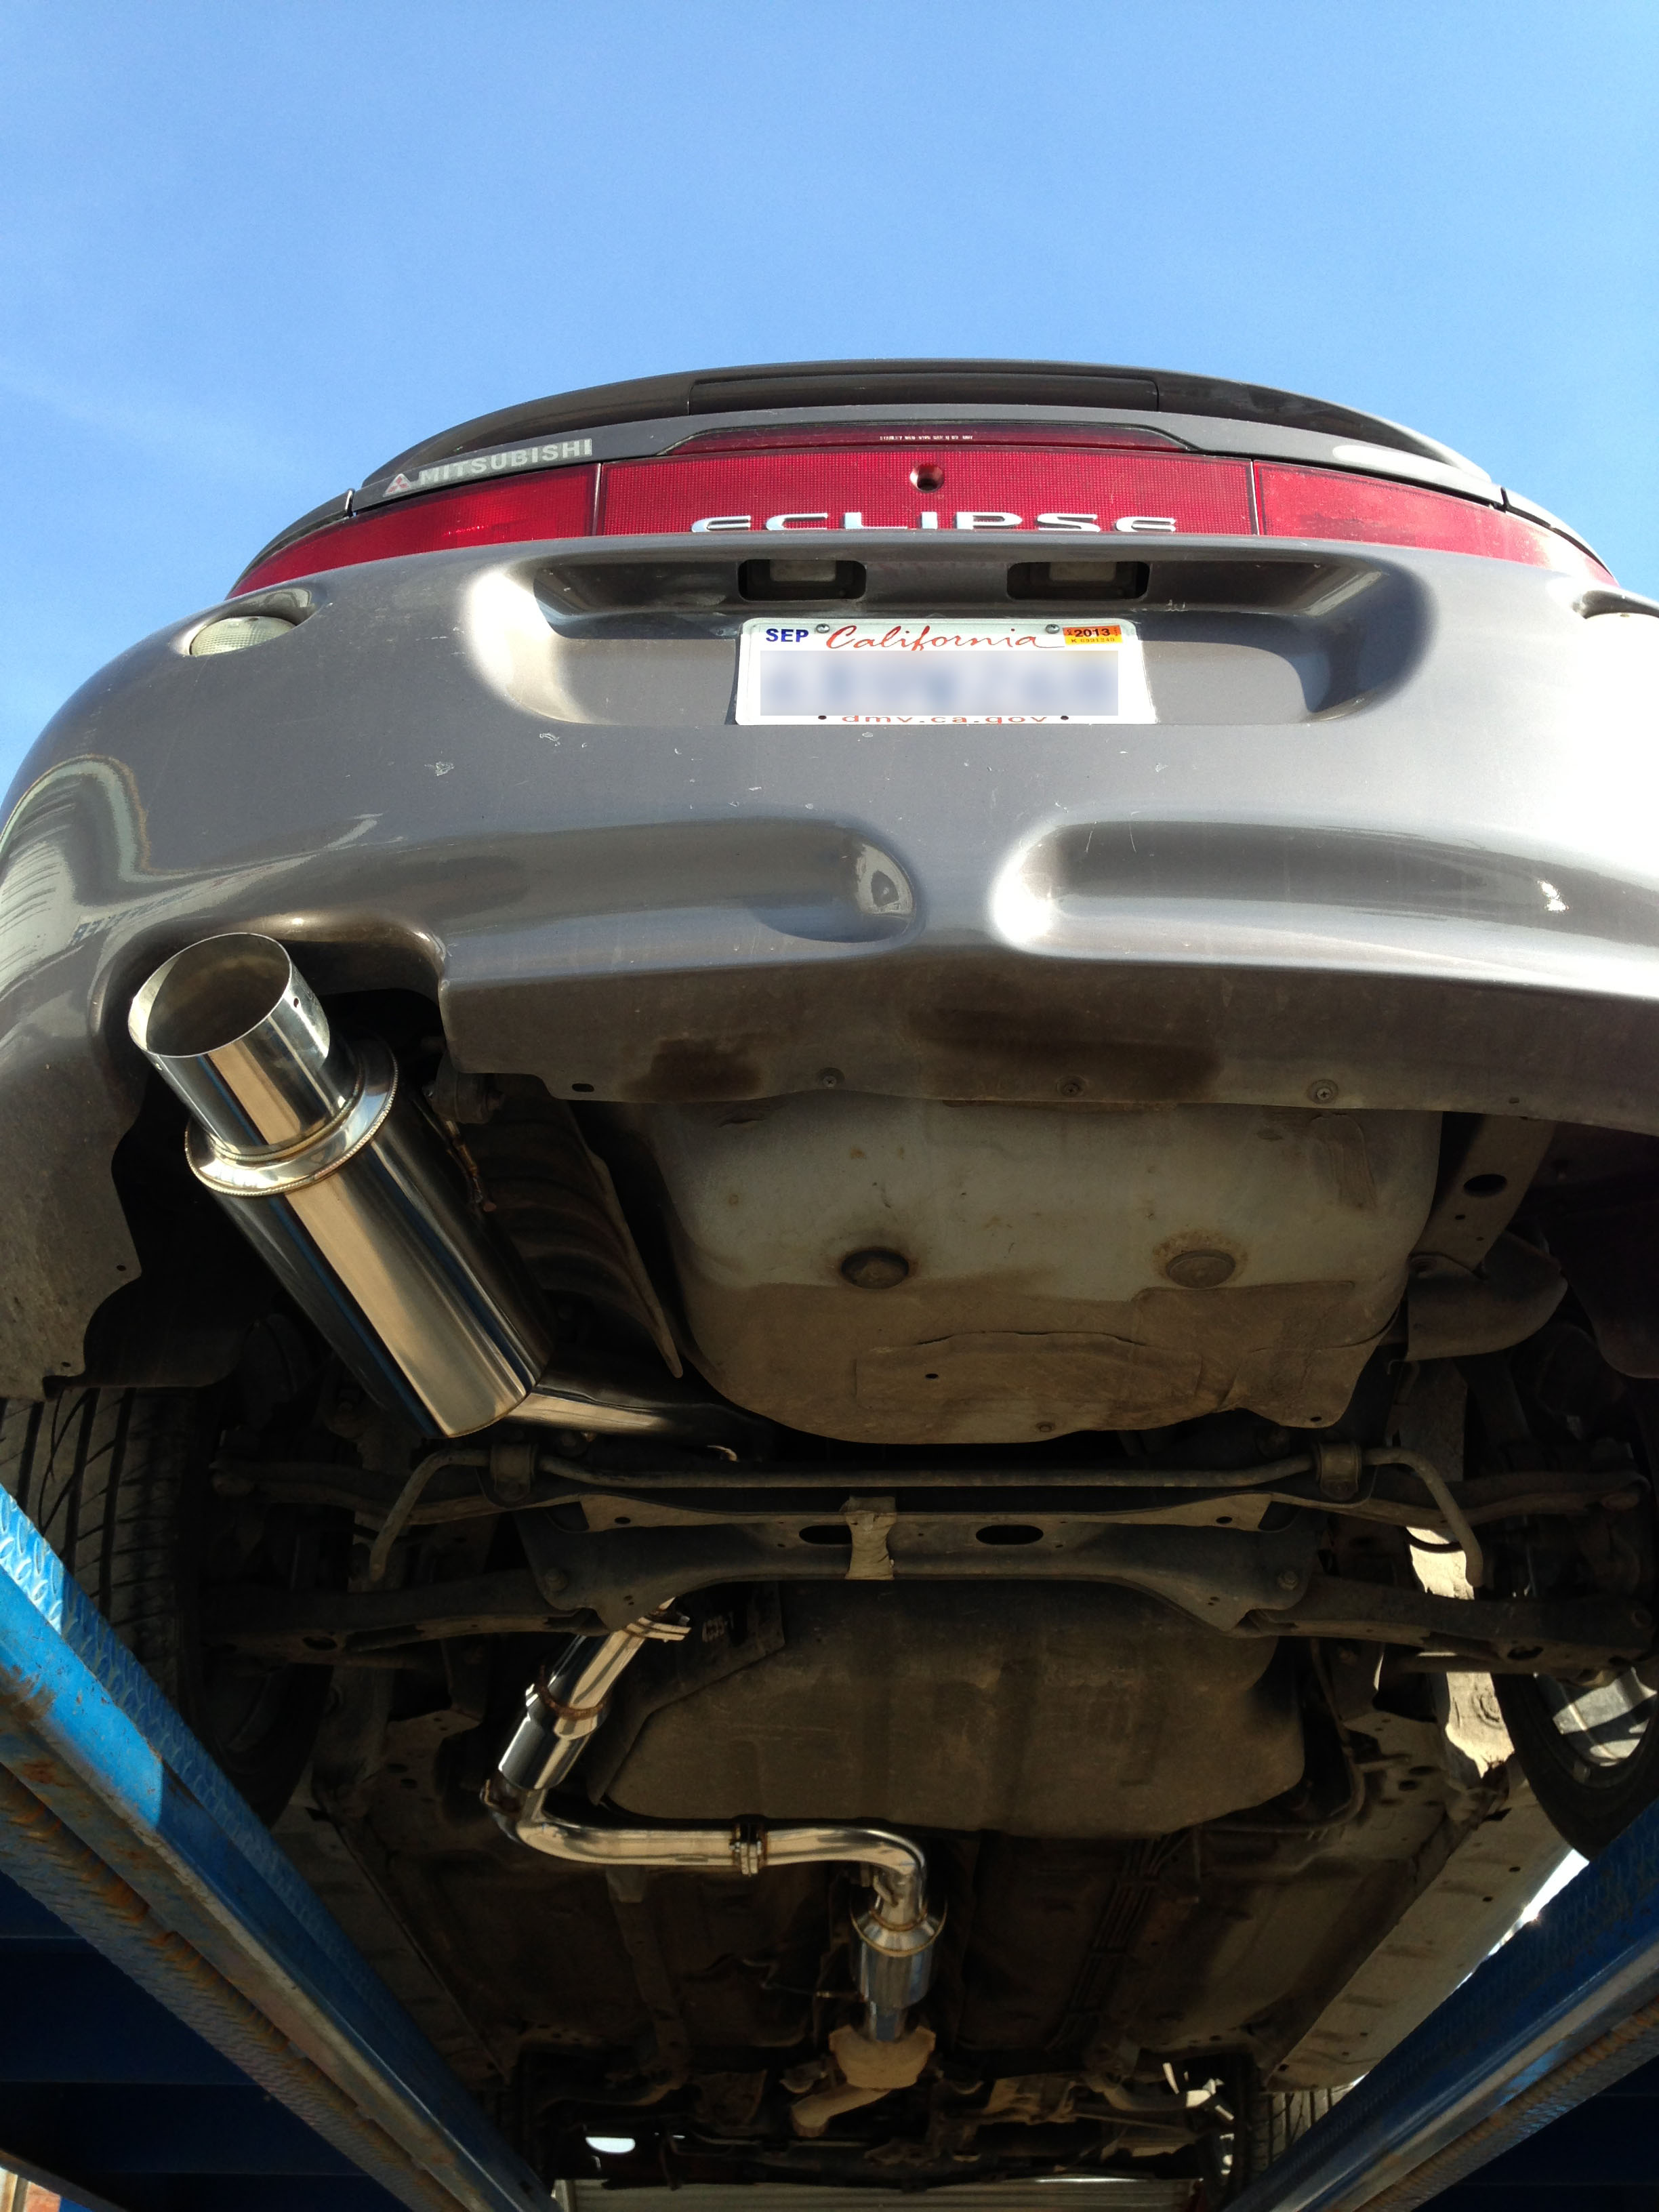 srs mitsubishi eclipse gst 95 99 catback exhaust system srs mitsubishi eclipse gst 95 99 talon catback exhaust system